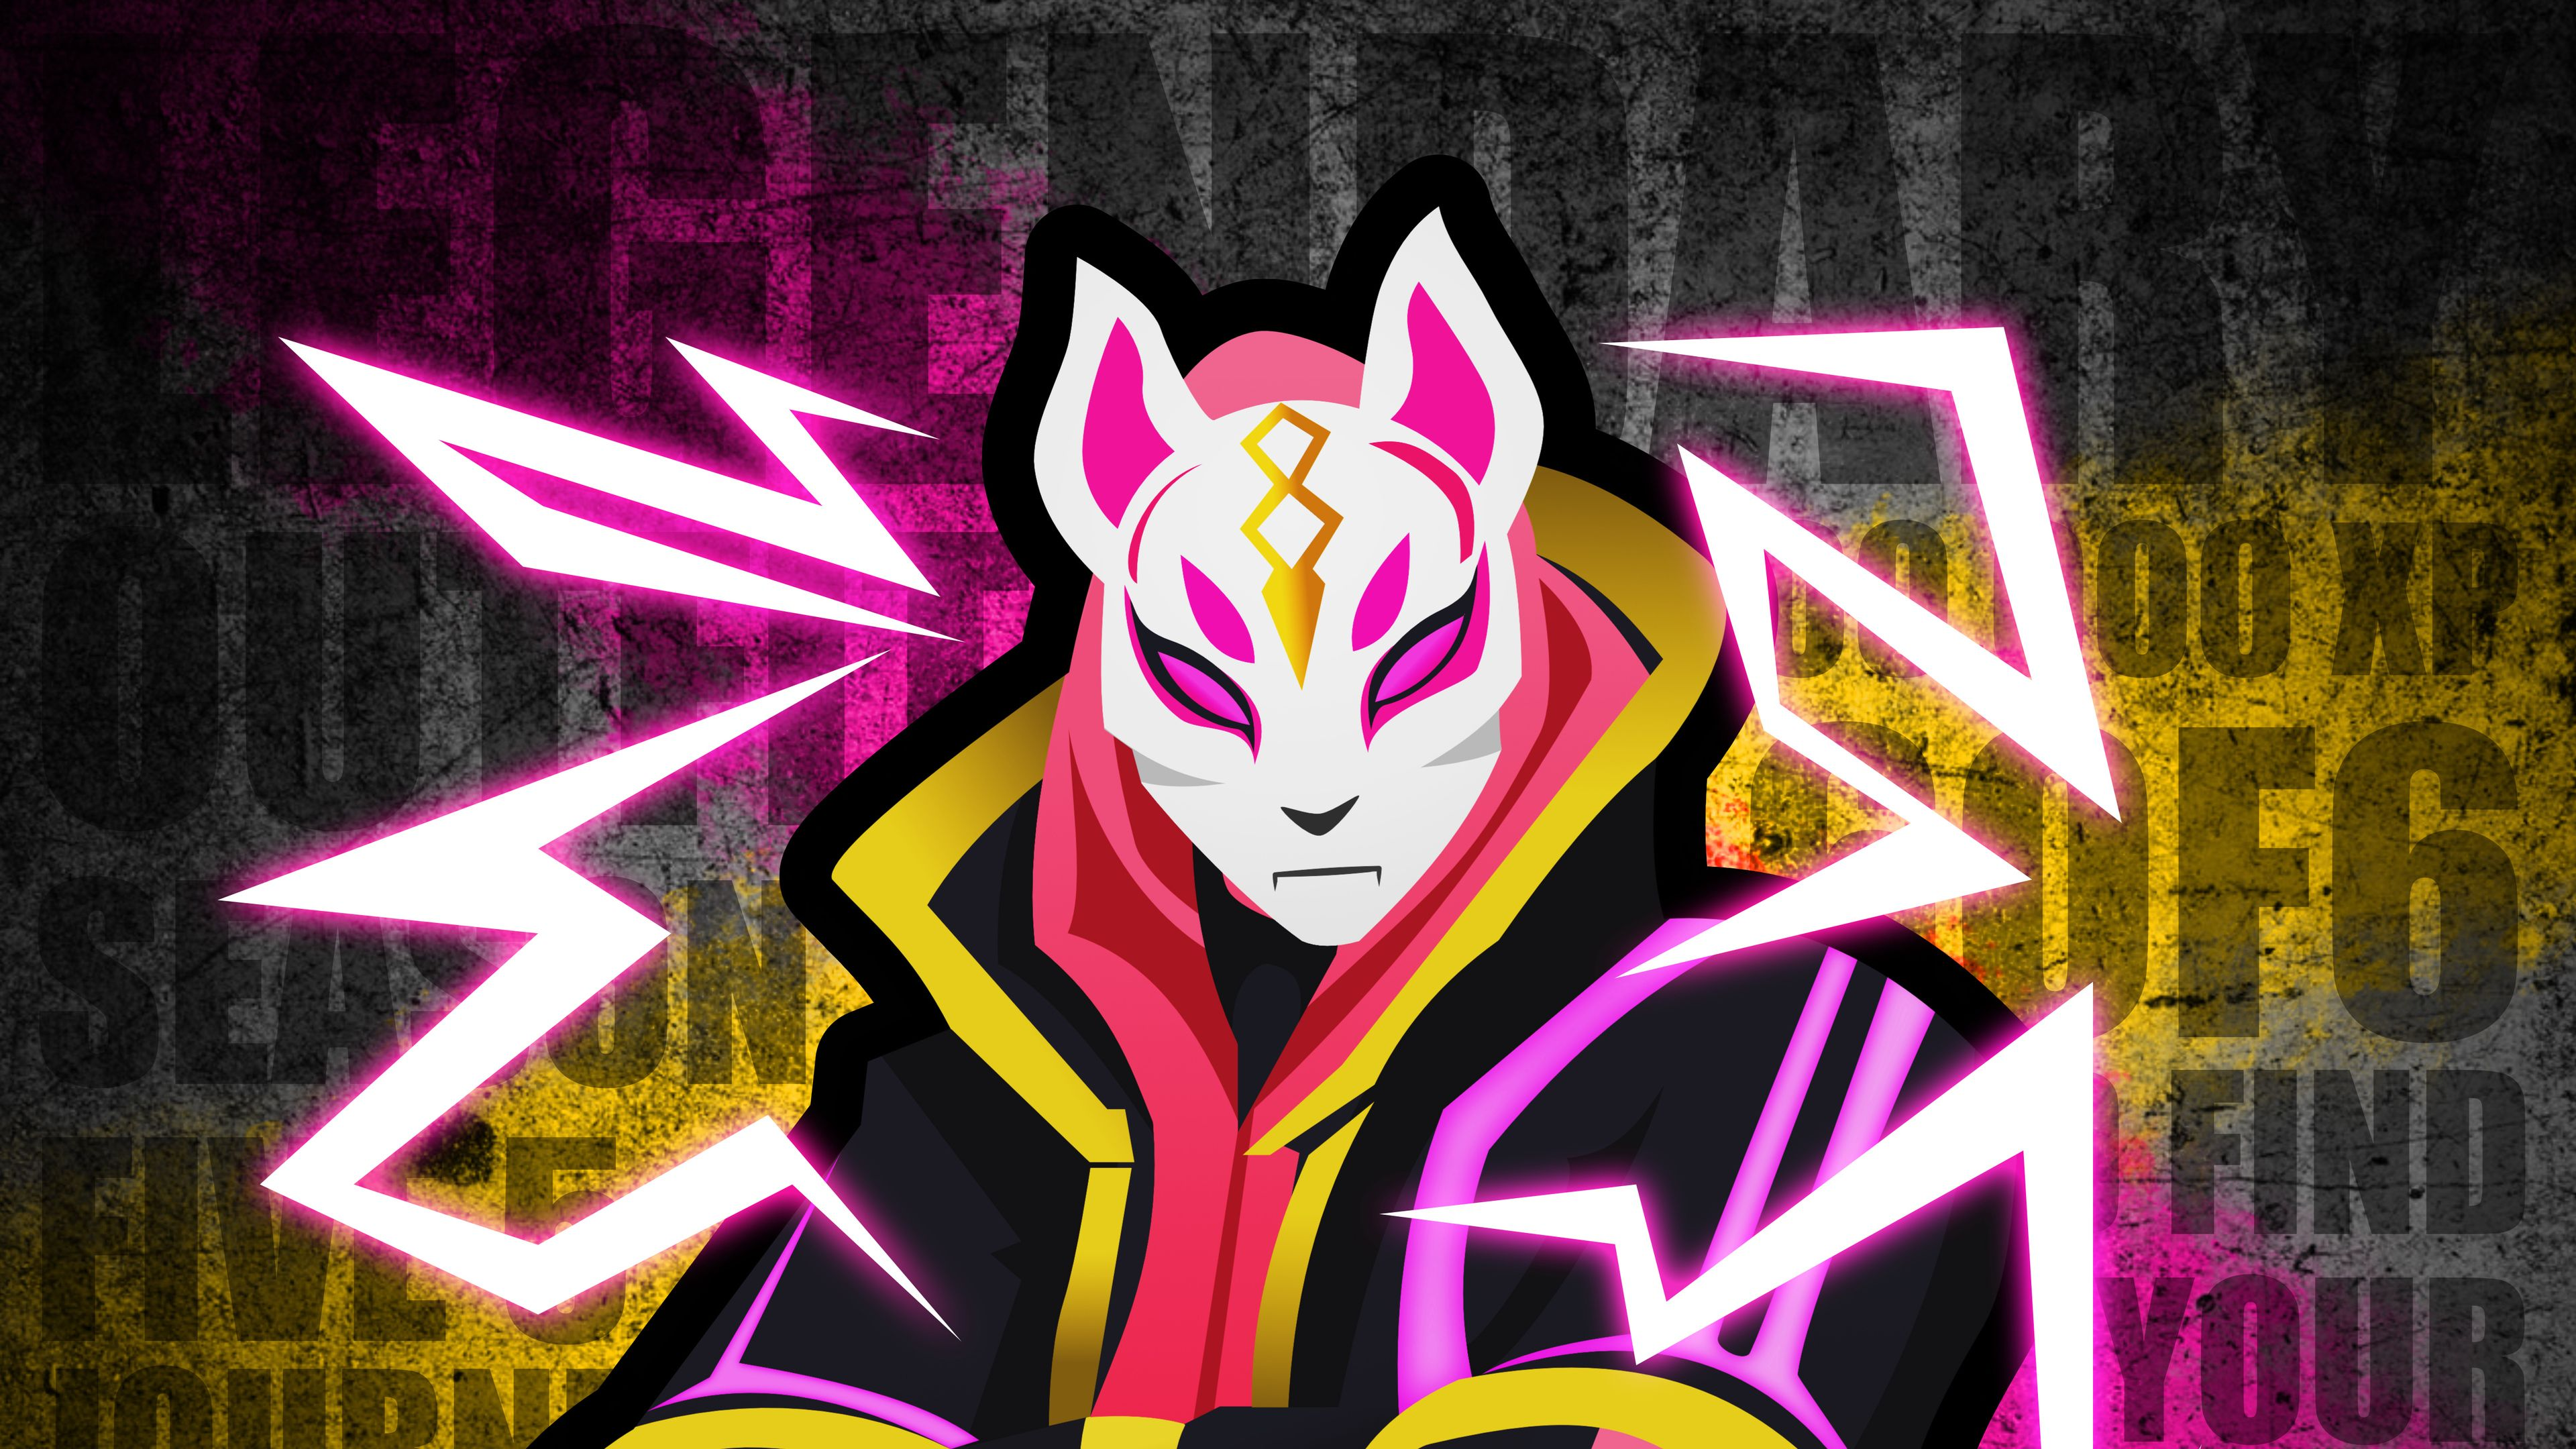 Fortnite Drift Poster 4k ps games wallpapers poster wallpapers 3840x2160